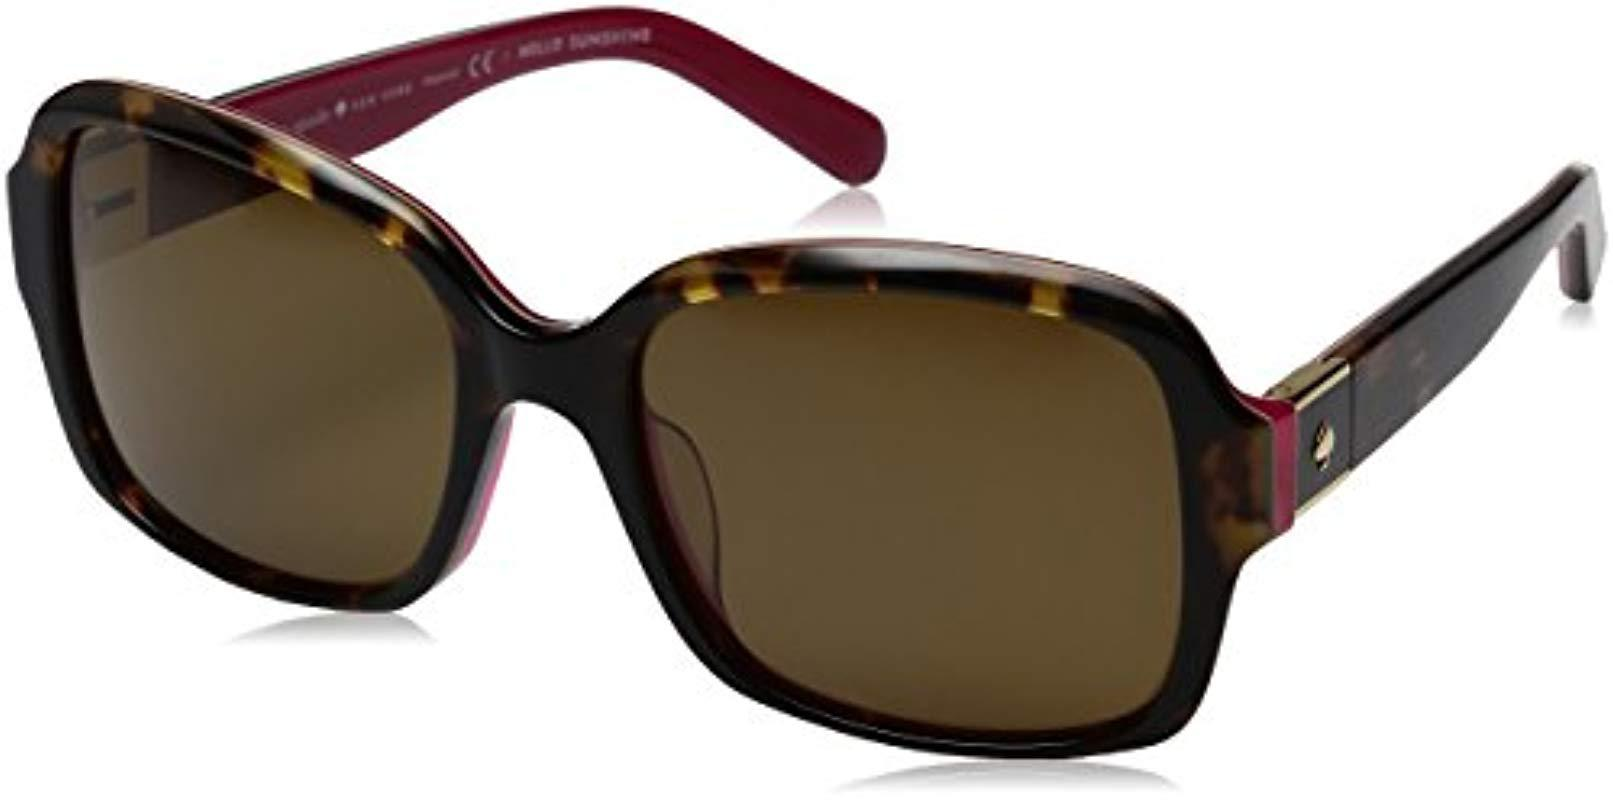 348687d647 Kate Spade. Women s Brown Kate Spade Annora ps Annorps Polarized  Rectangular Sunglasses